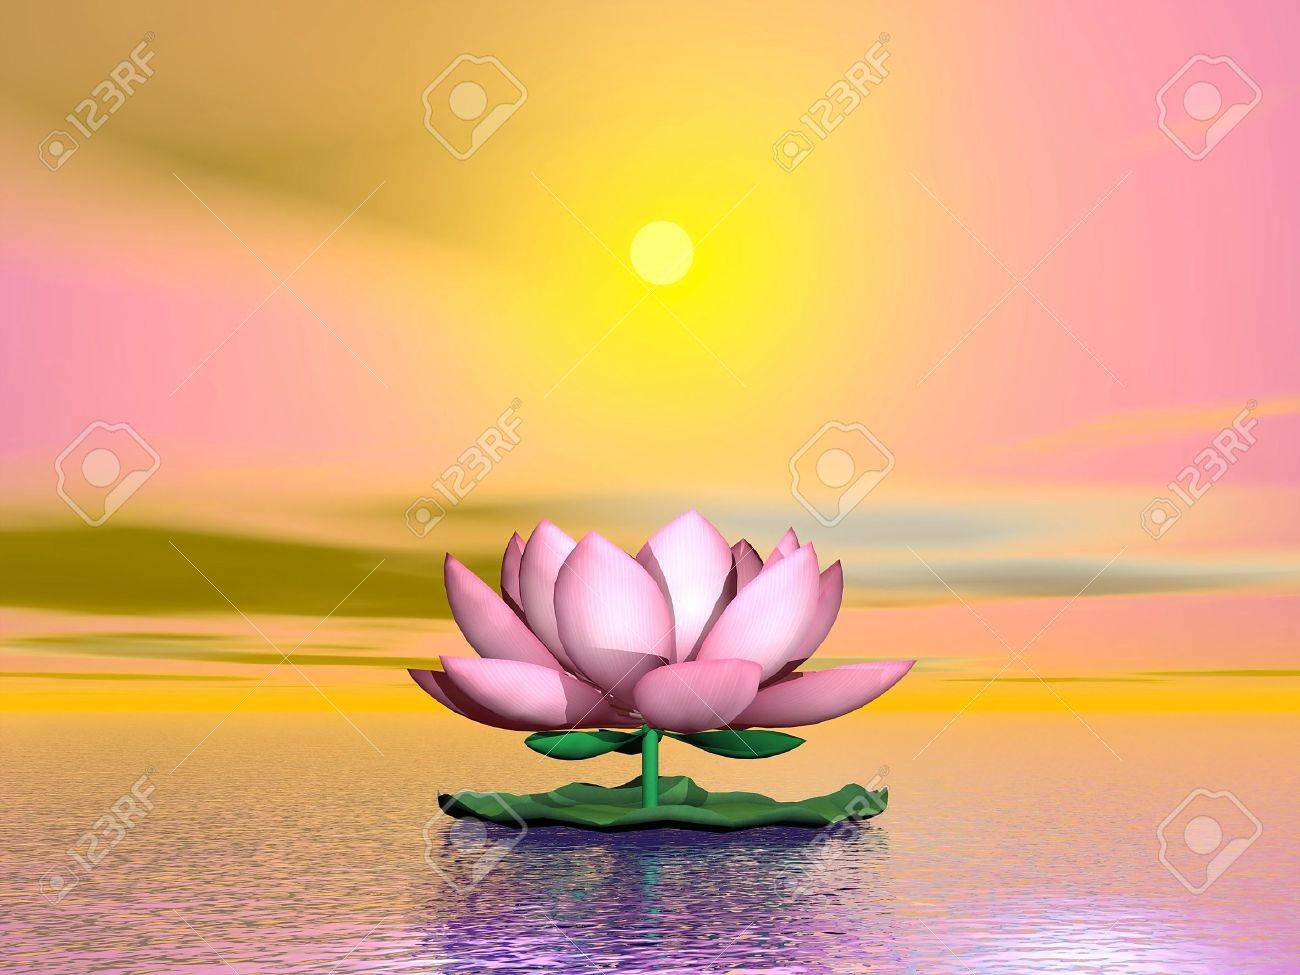 Beautiful pink lotus flower on the water by orange sunset stock beautiful pink lotus flower on the water by orange sunset stock photo 19756200 izmirmasajfo